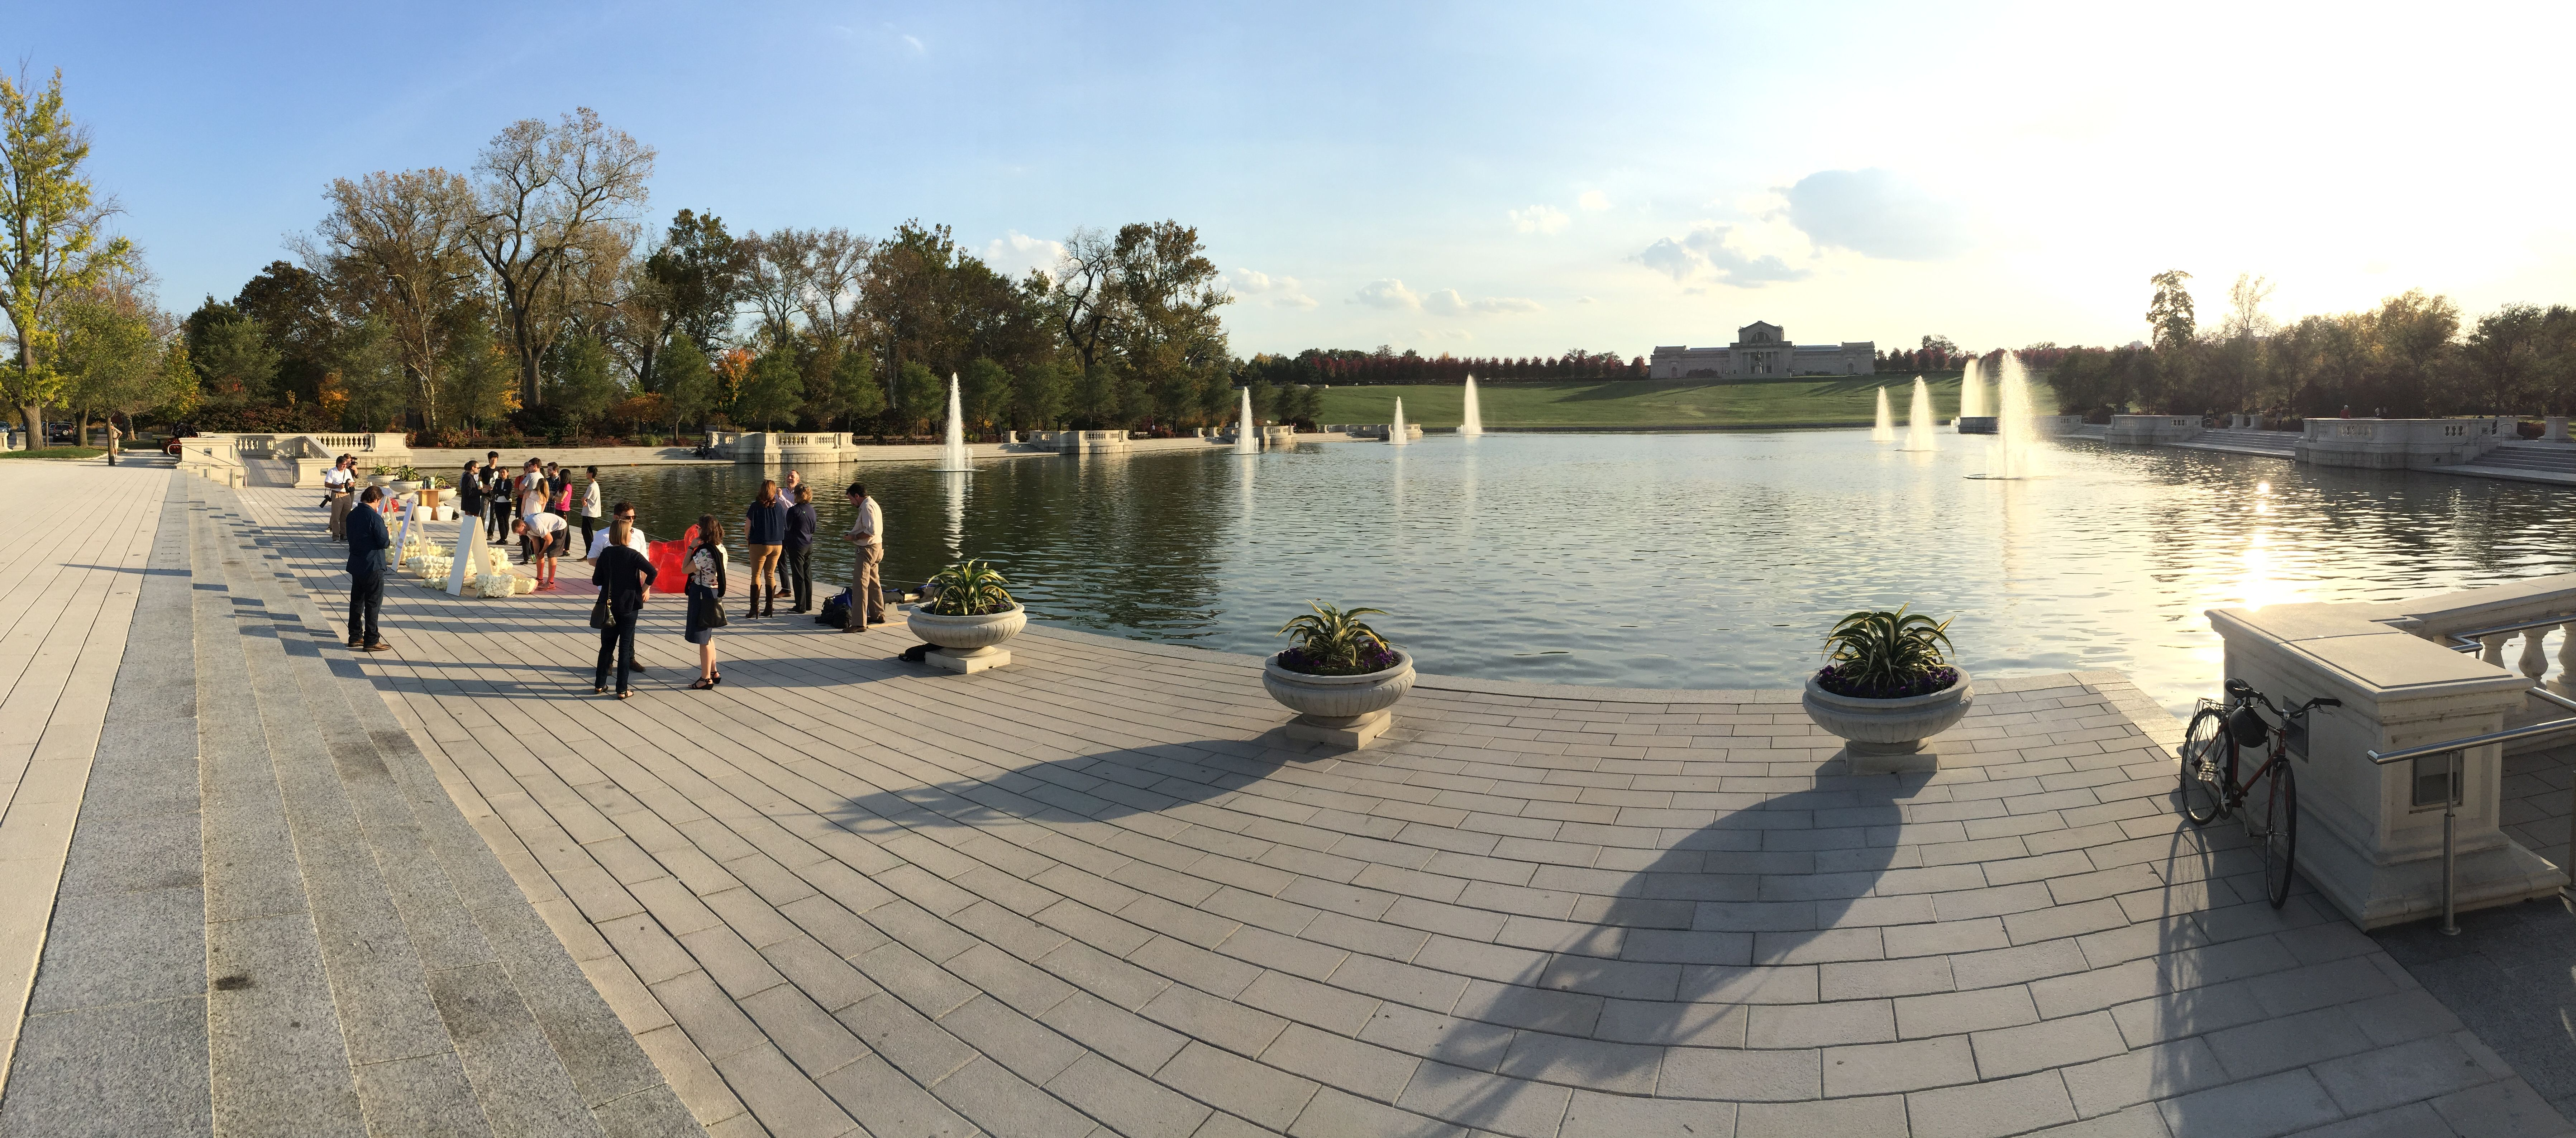 beautiful forest park st louis backdrop for wash u event